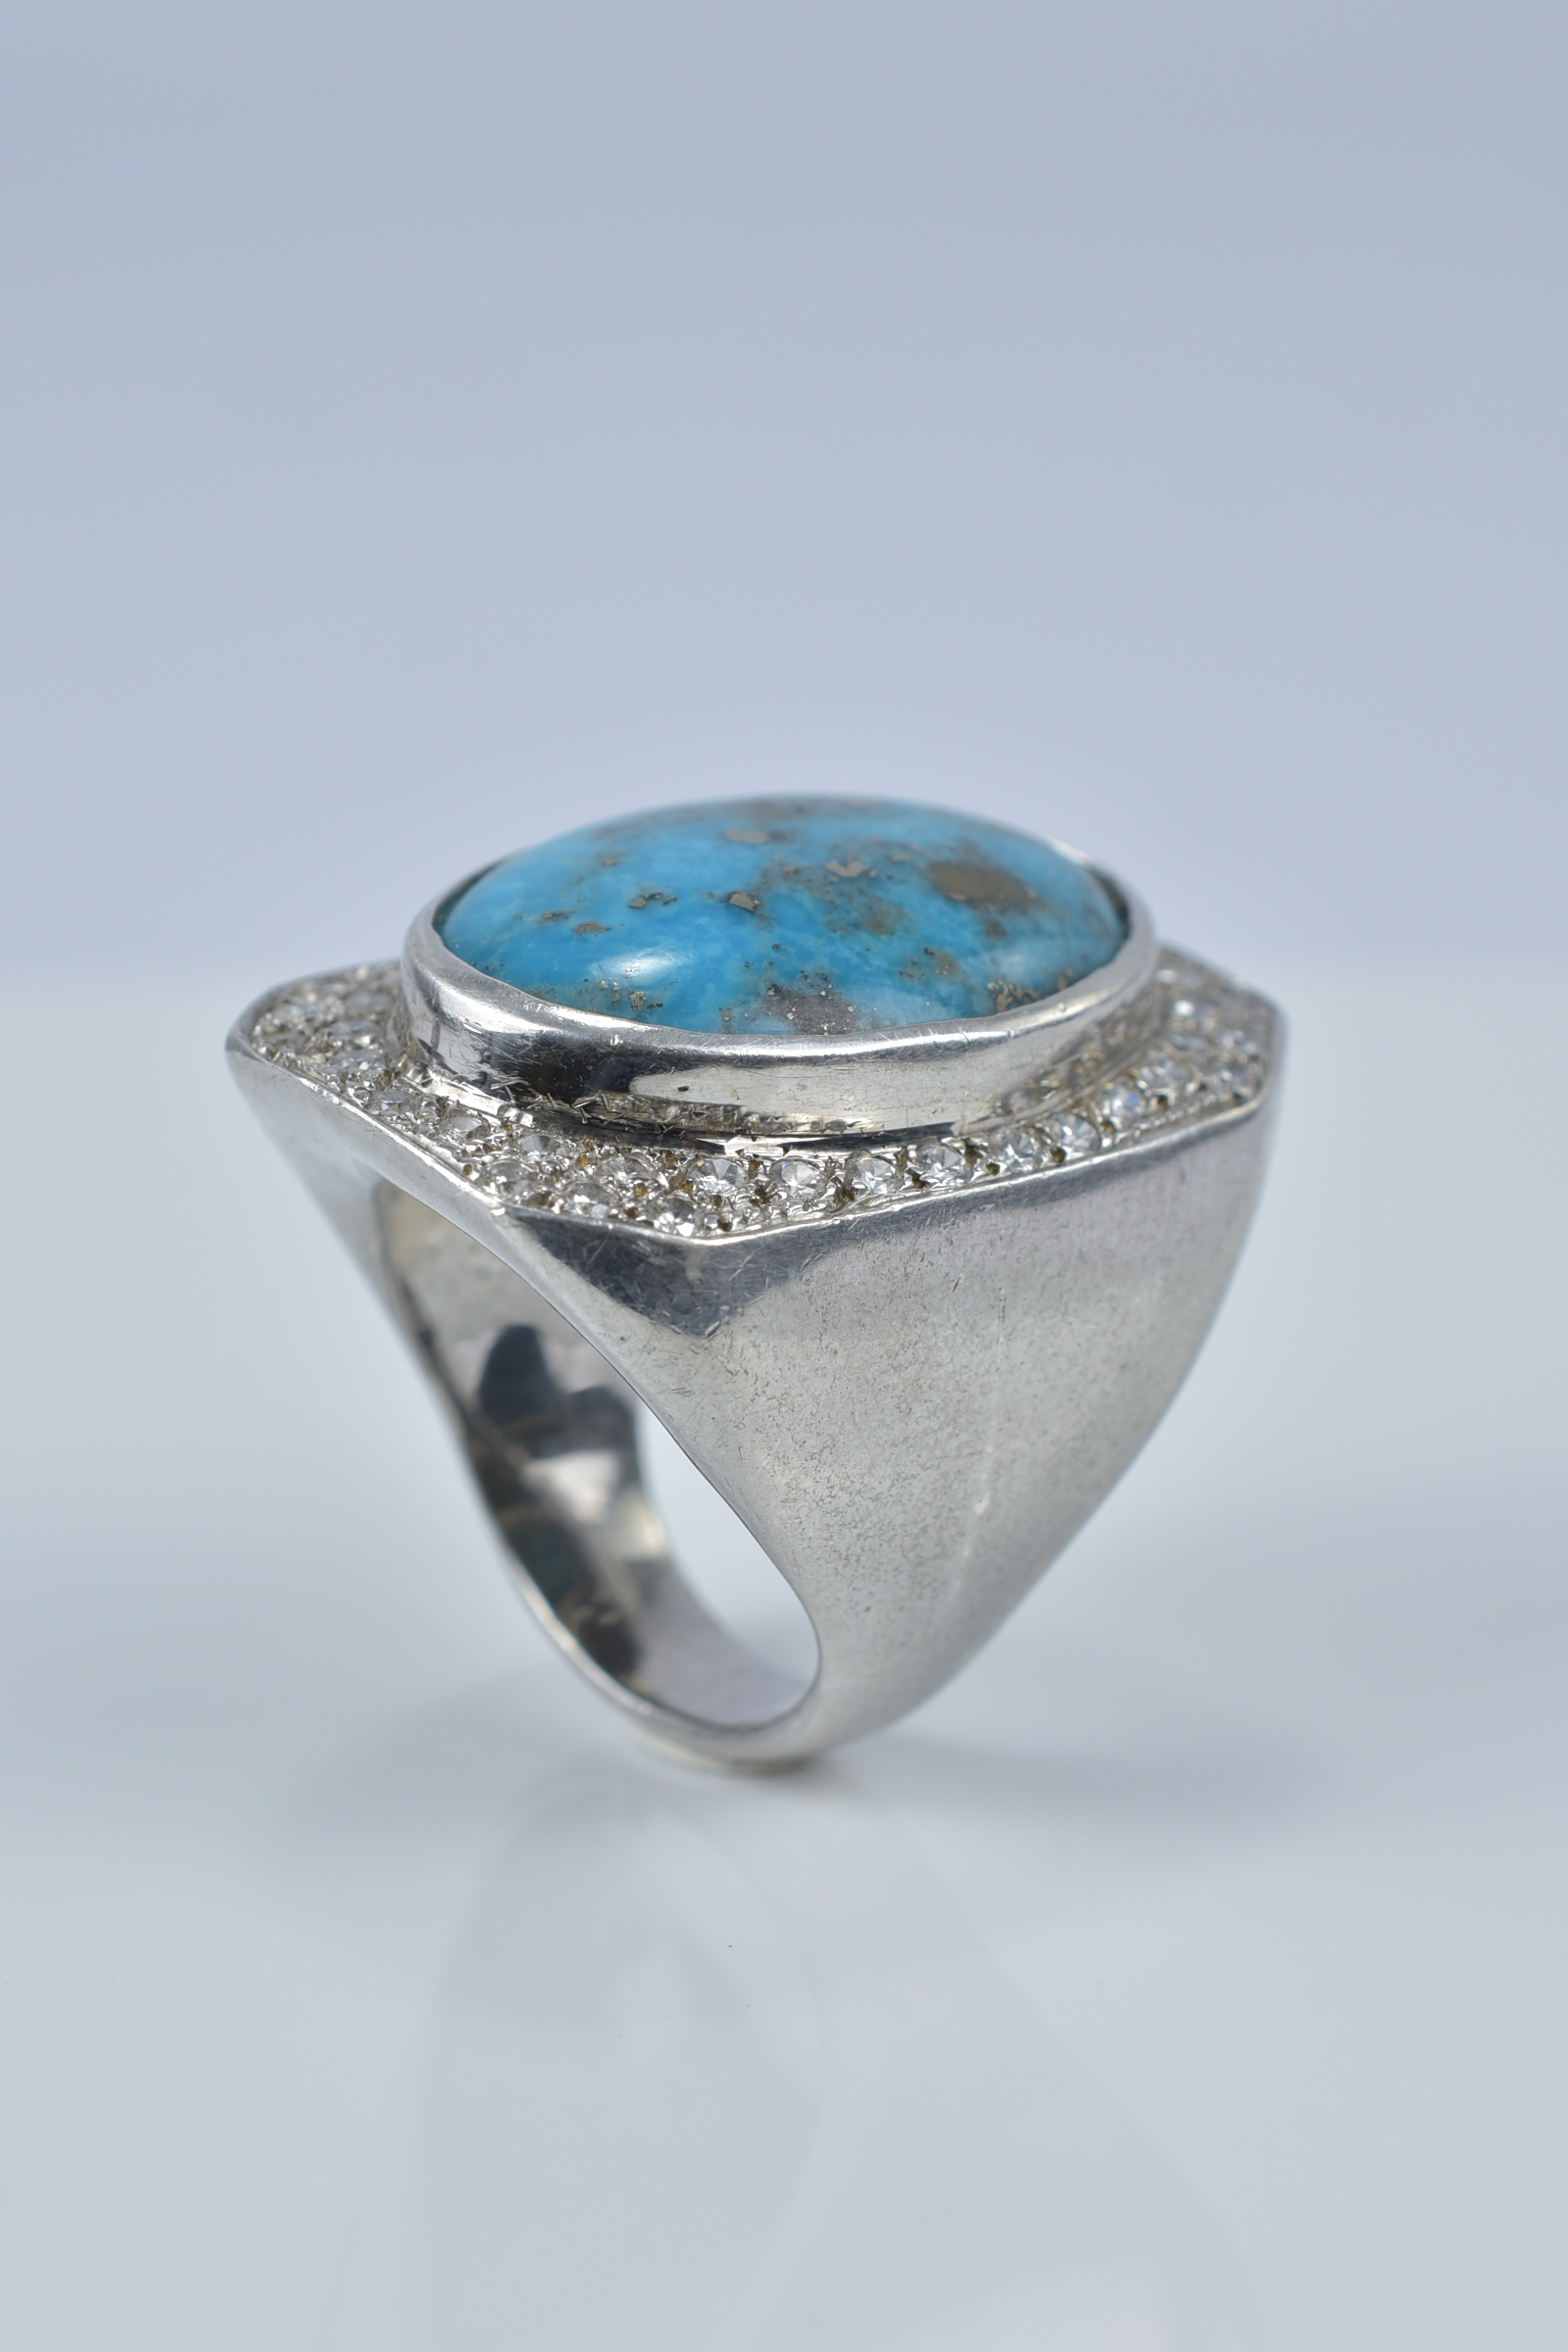 Lot 34 - A large turquoise and silver ring stamped 925. Size R